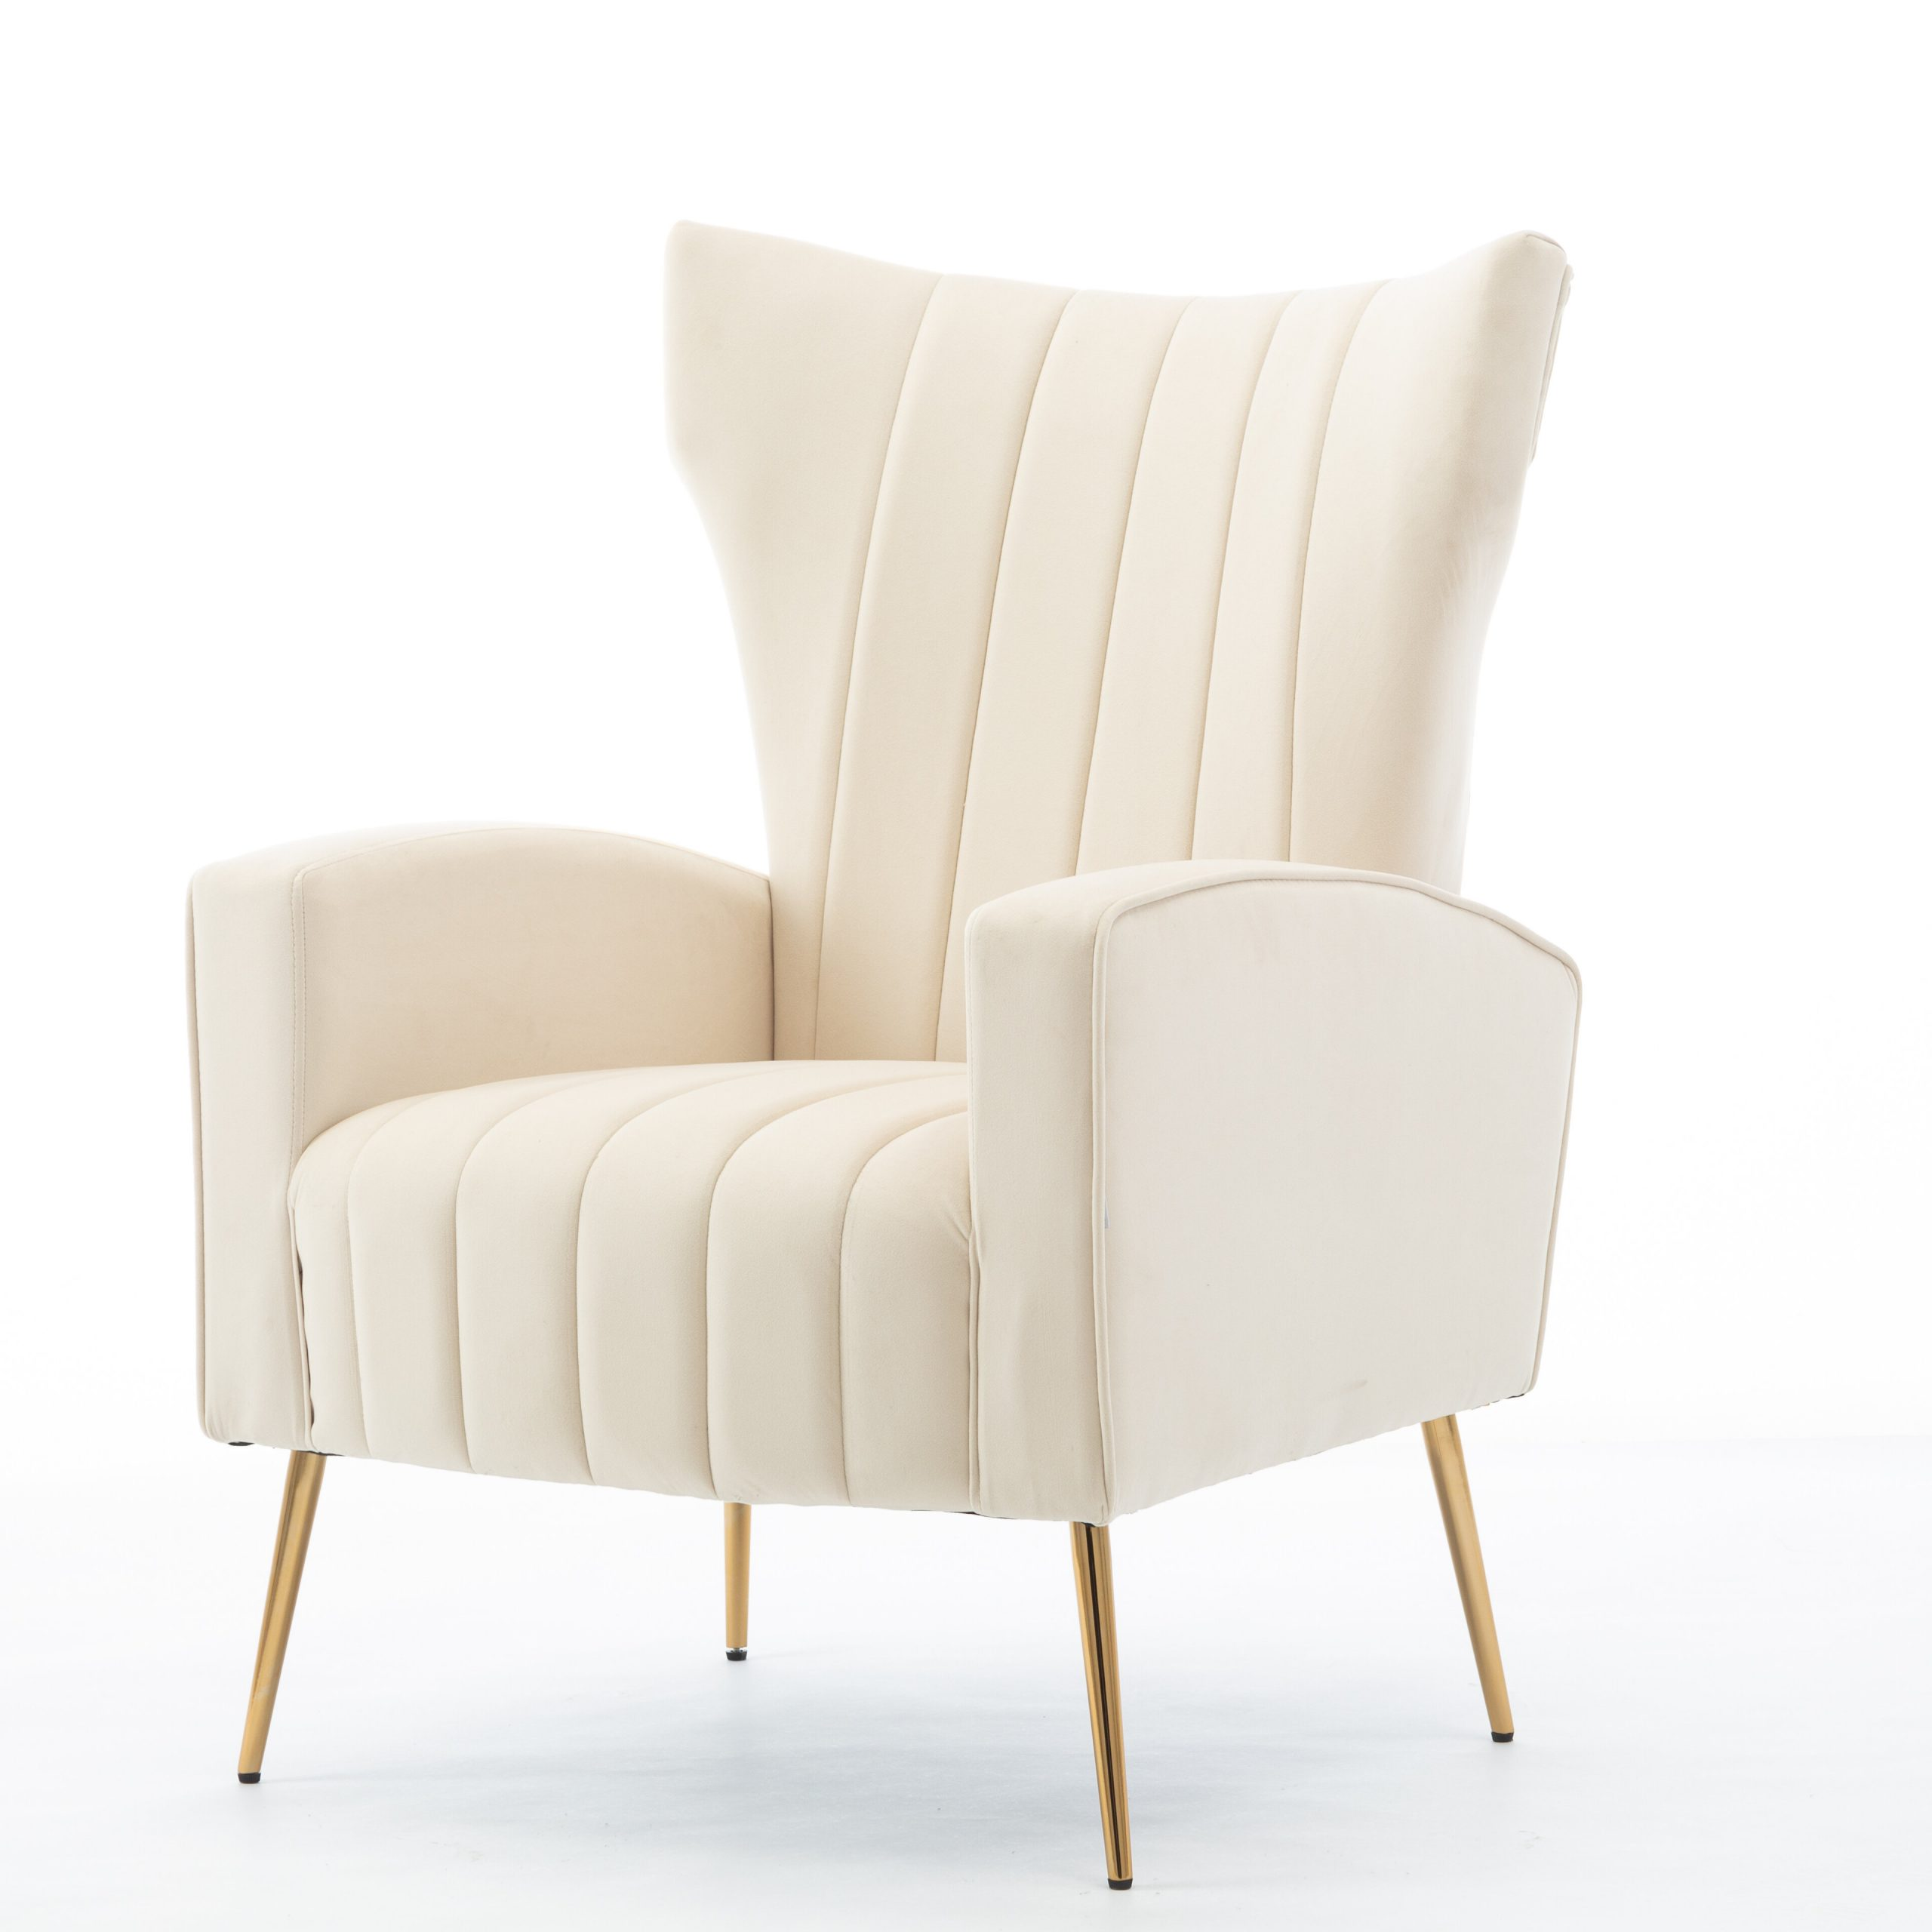 Latest Artemis Knitted Armchair Inside Artemi Barrel Chair And Ottoman Sets (View 17 of 20)